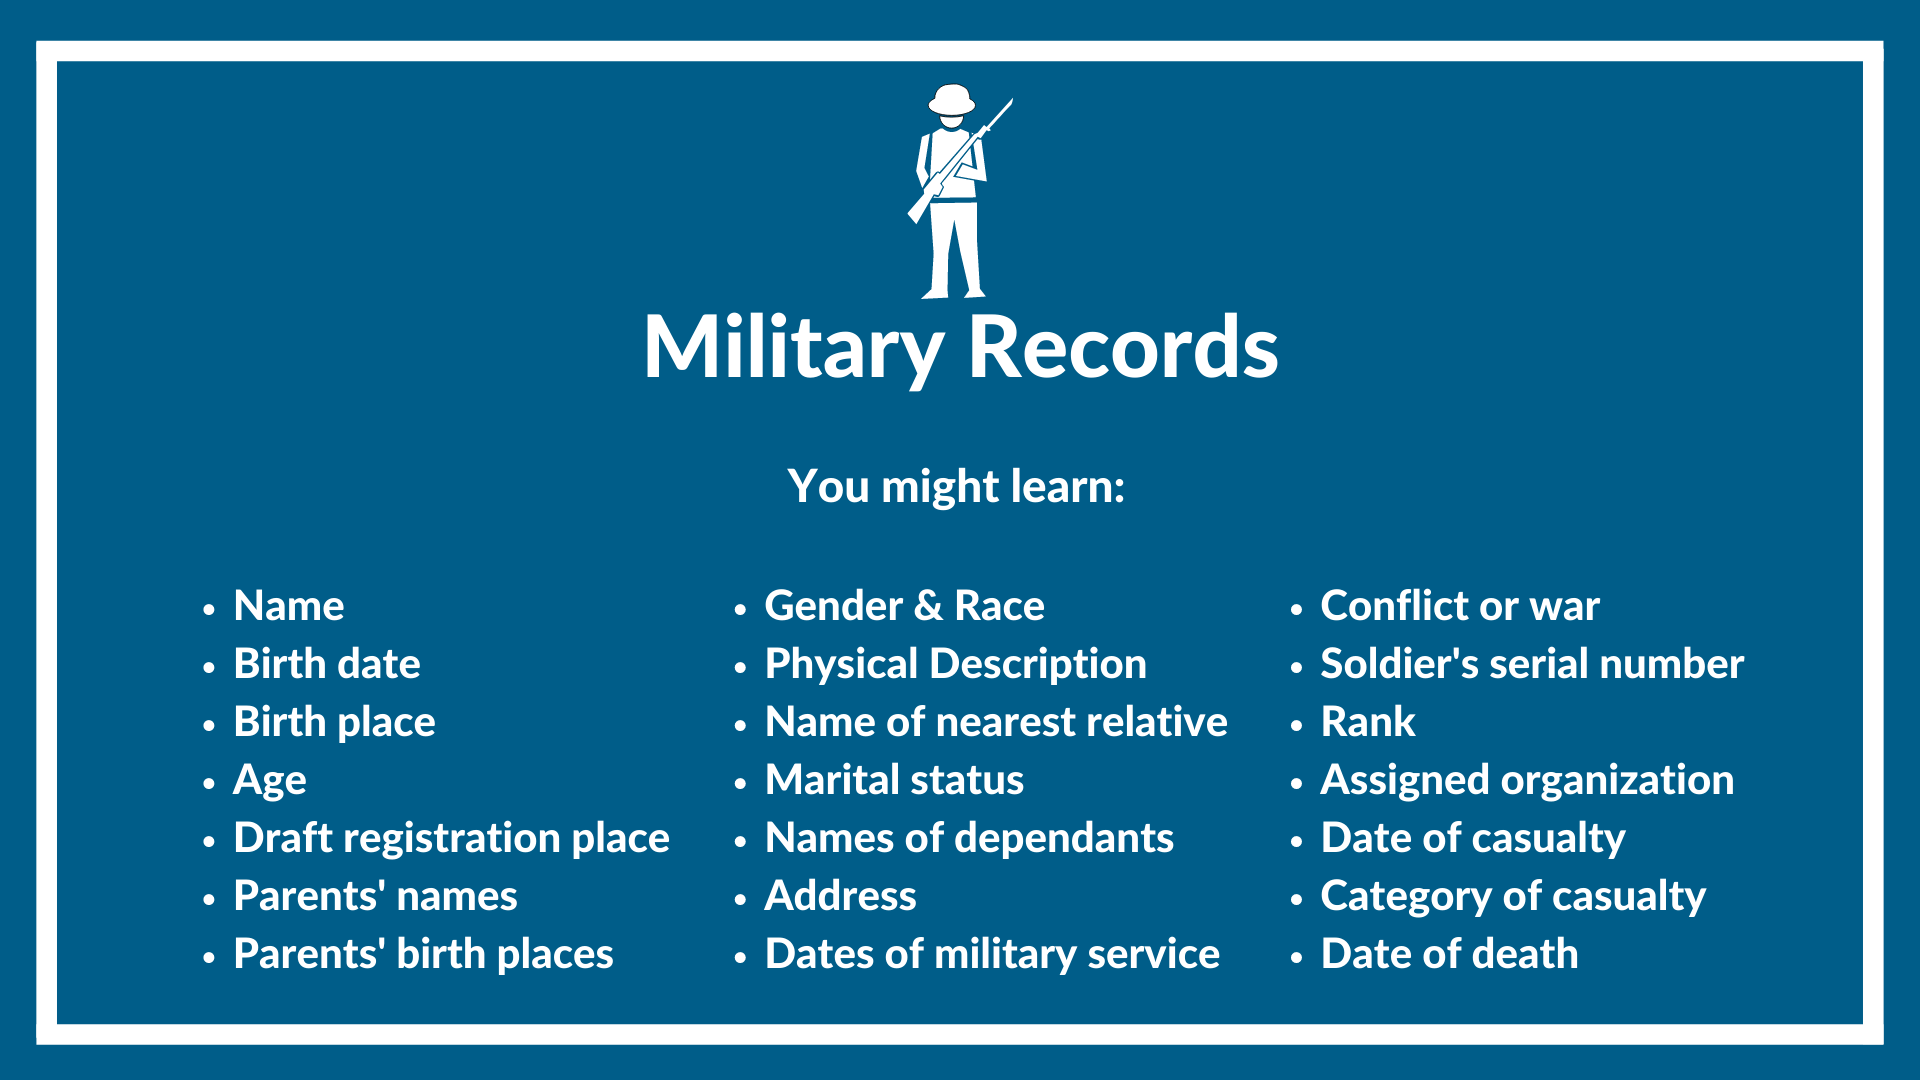 Military Records and what you can learn from them